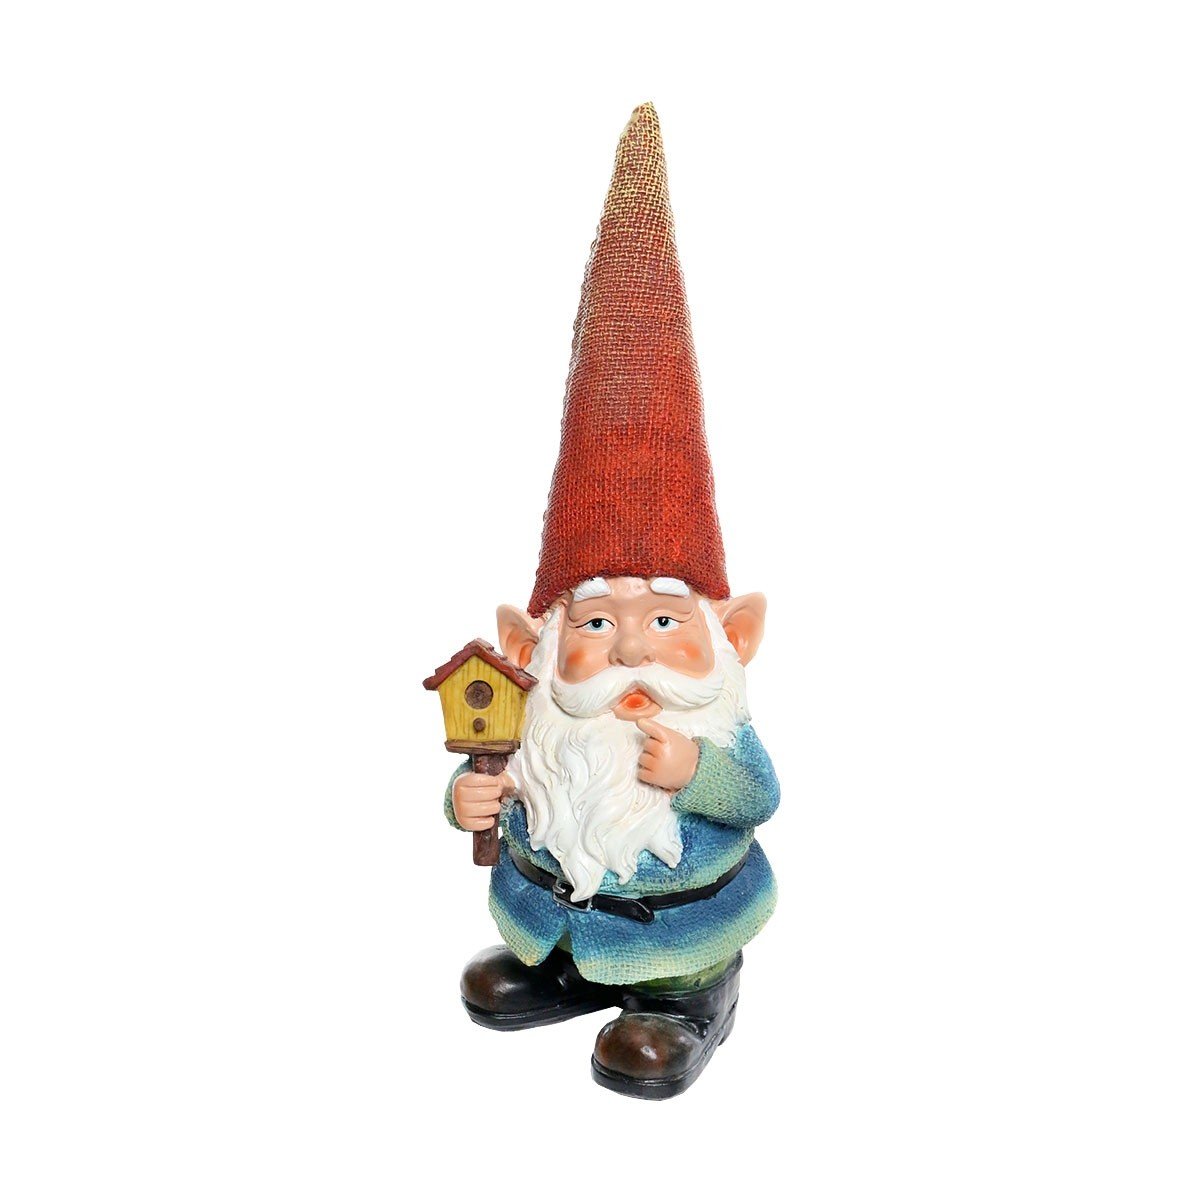 "Decorate your walk way, garden or home with this quirky Gnome holding a birdhouse. Stands 15"" inches tall, and is sure to accent any home or garden."